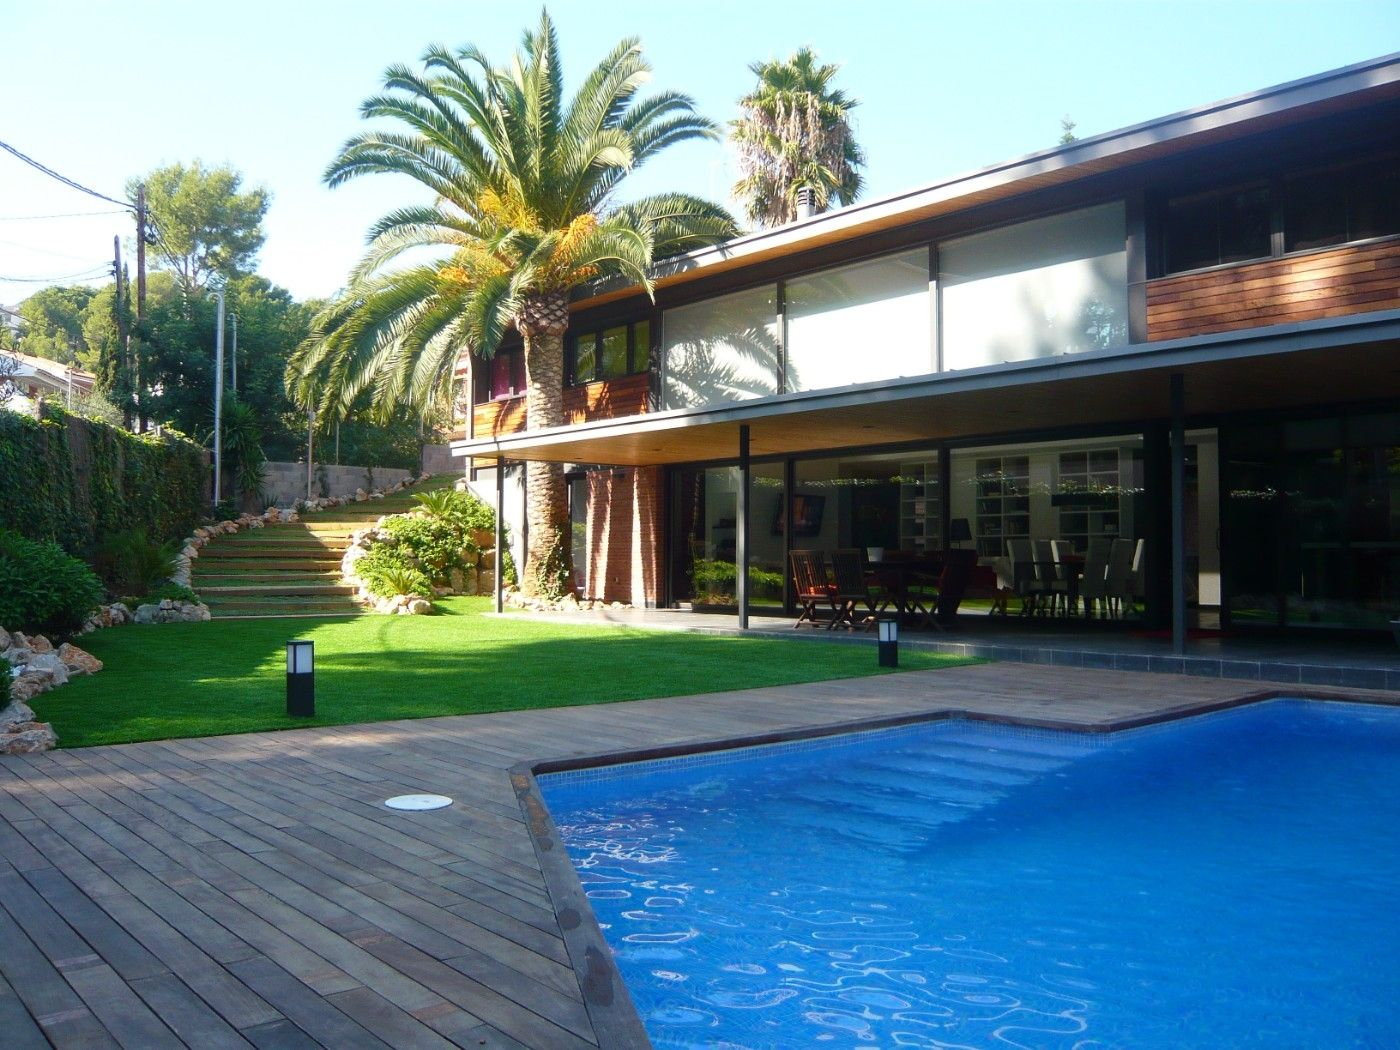 Holiday lettings House  Paseig del bosc. Exclusiva y moderna con piscina